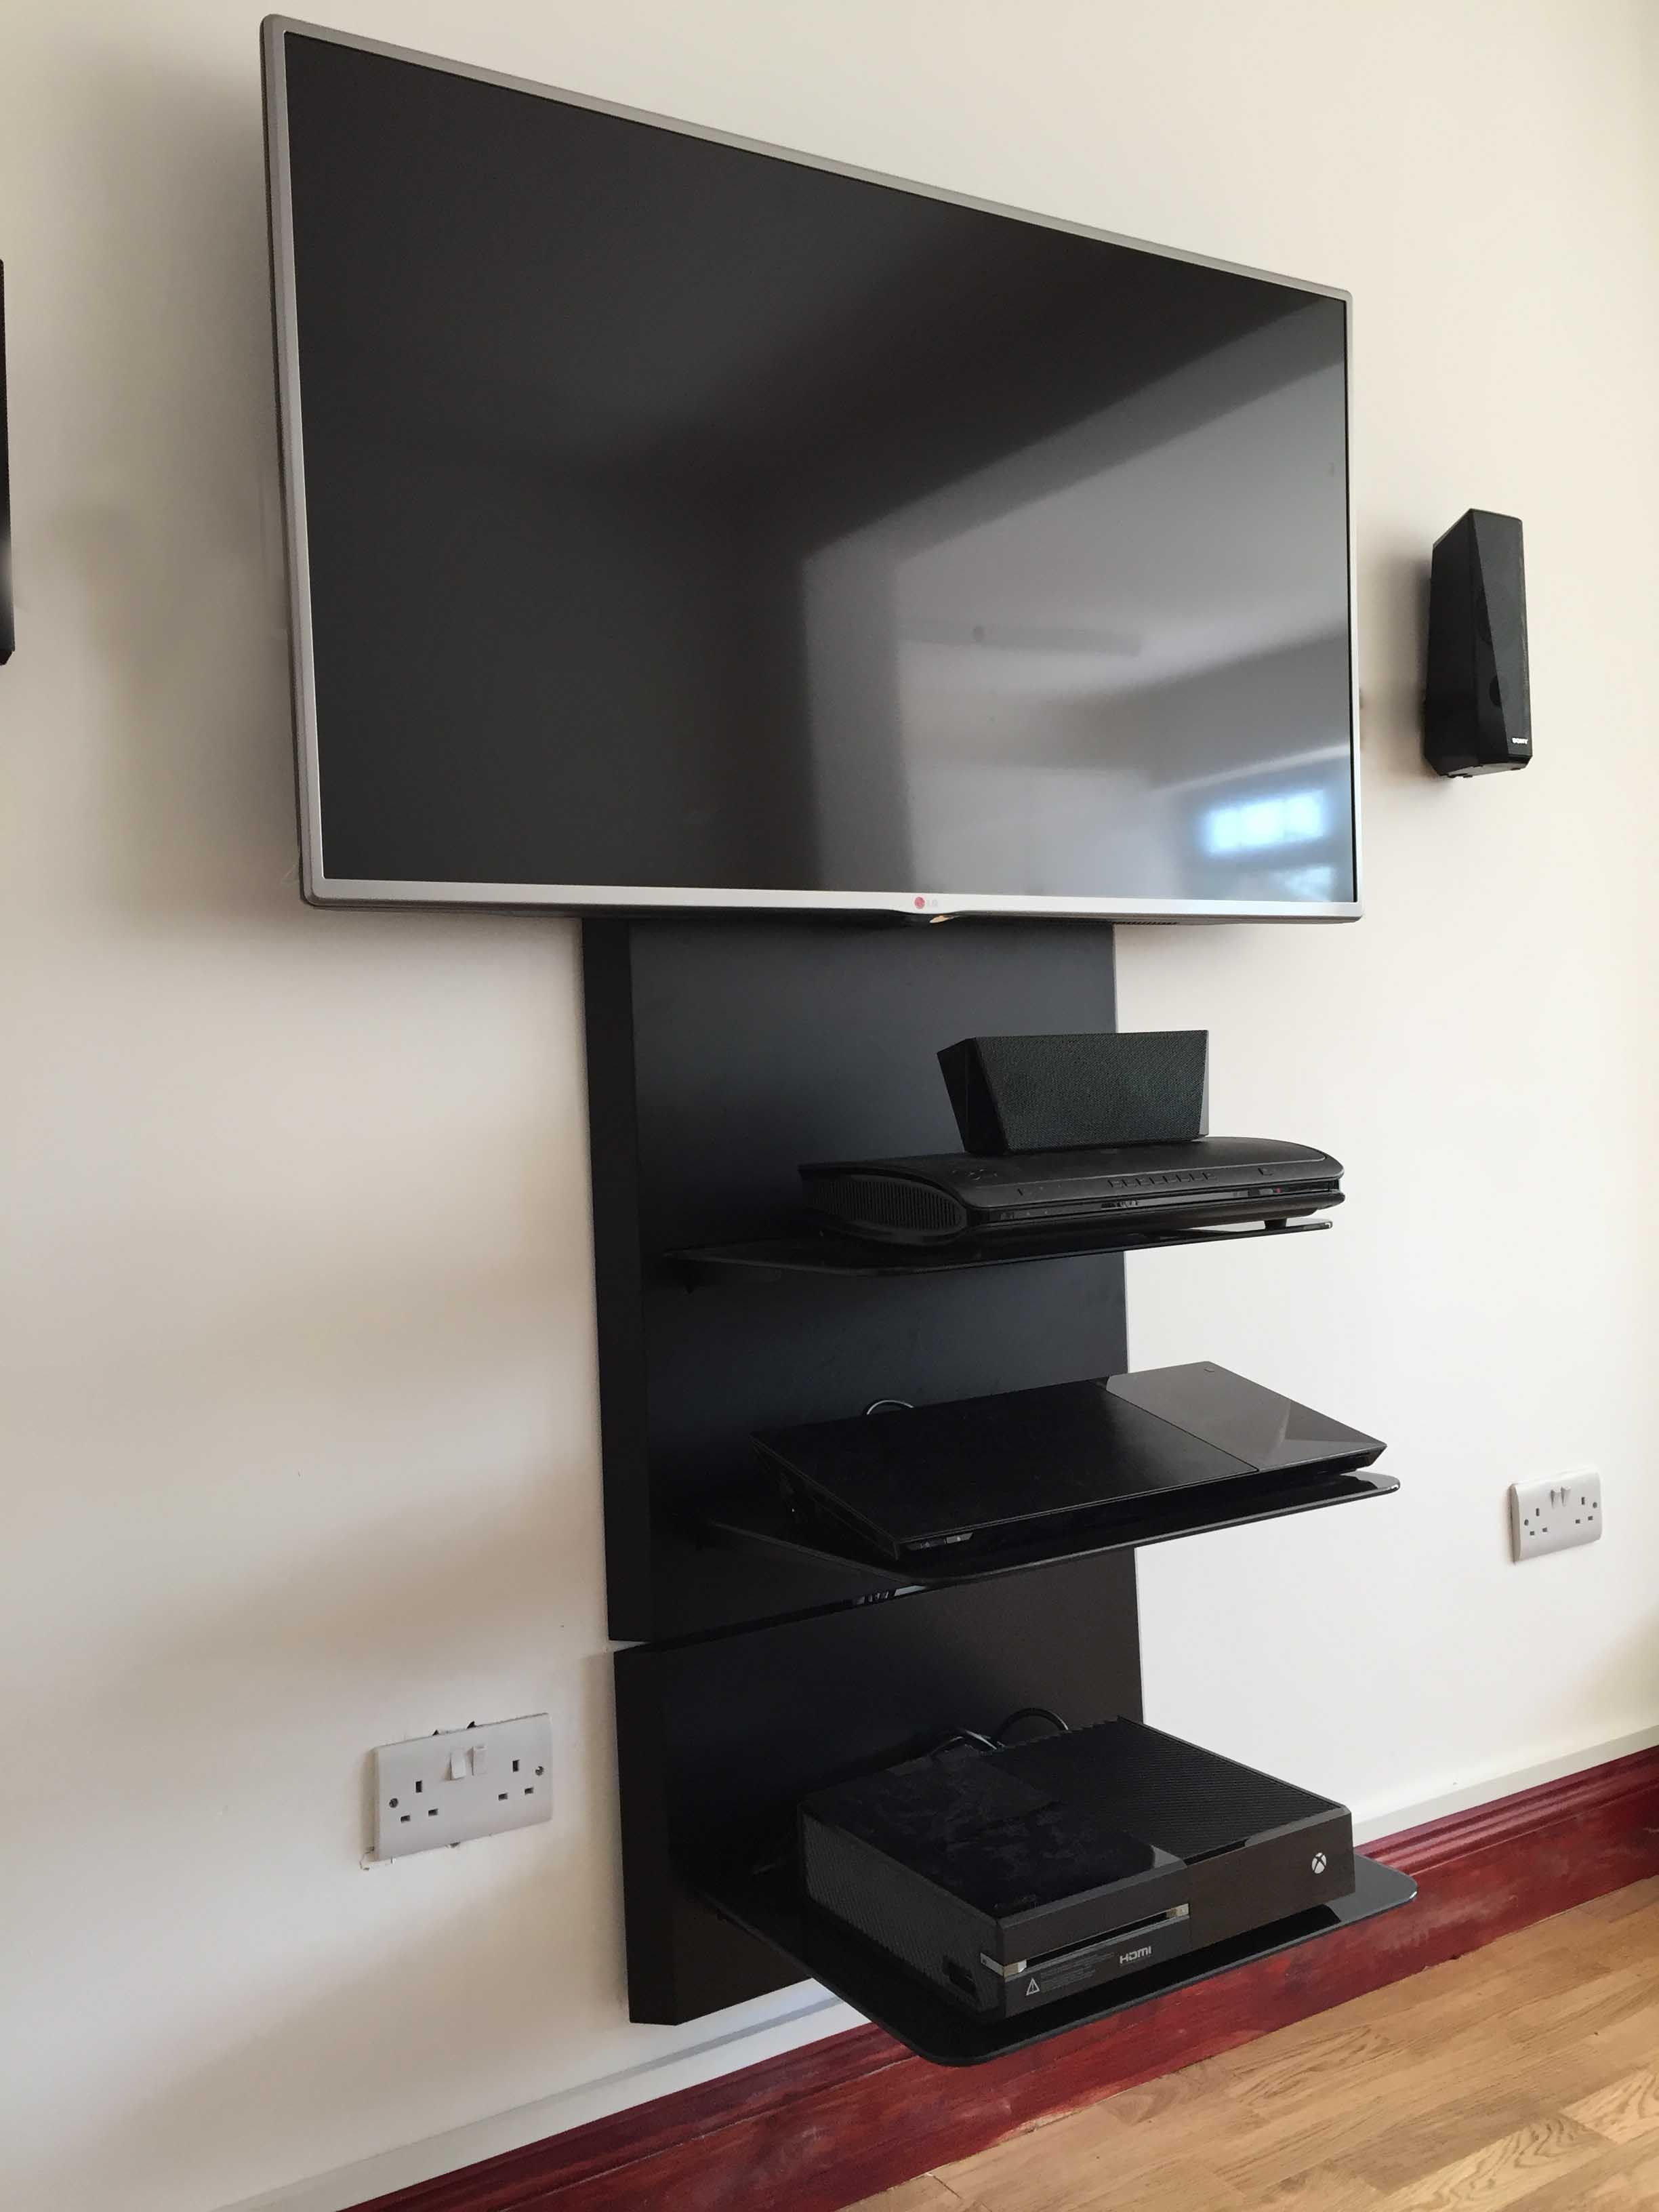 Wall Shelves Design Cable Box Shelves For The Wall Attache To For  Measurements 1200 X 1200 Auf Corner Wall Mounted Av Shelves